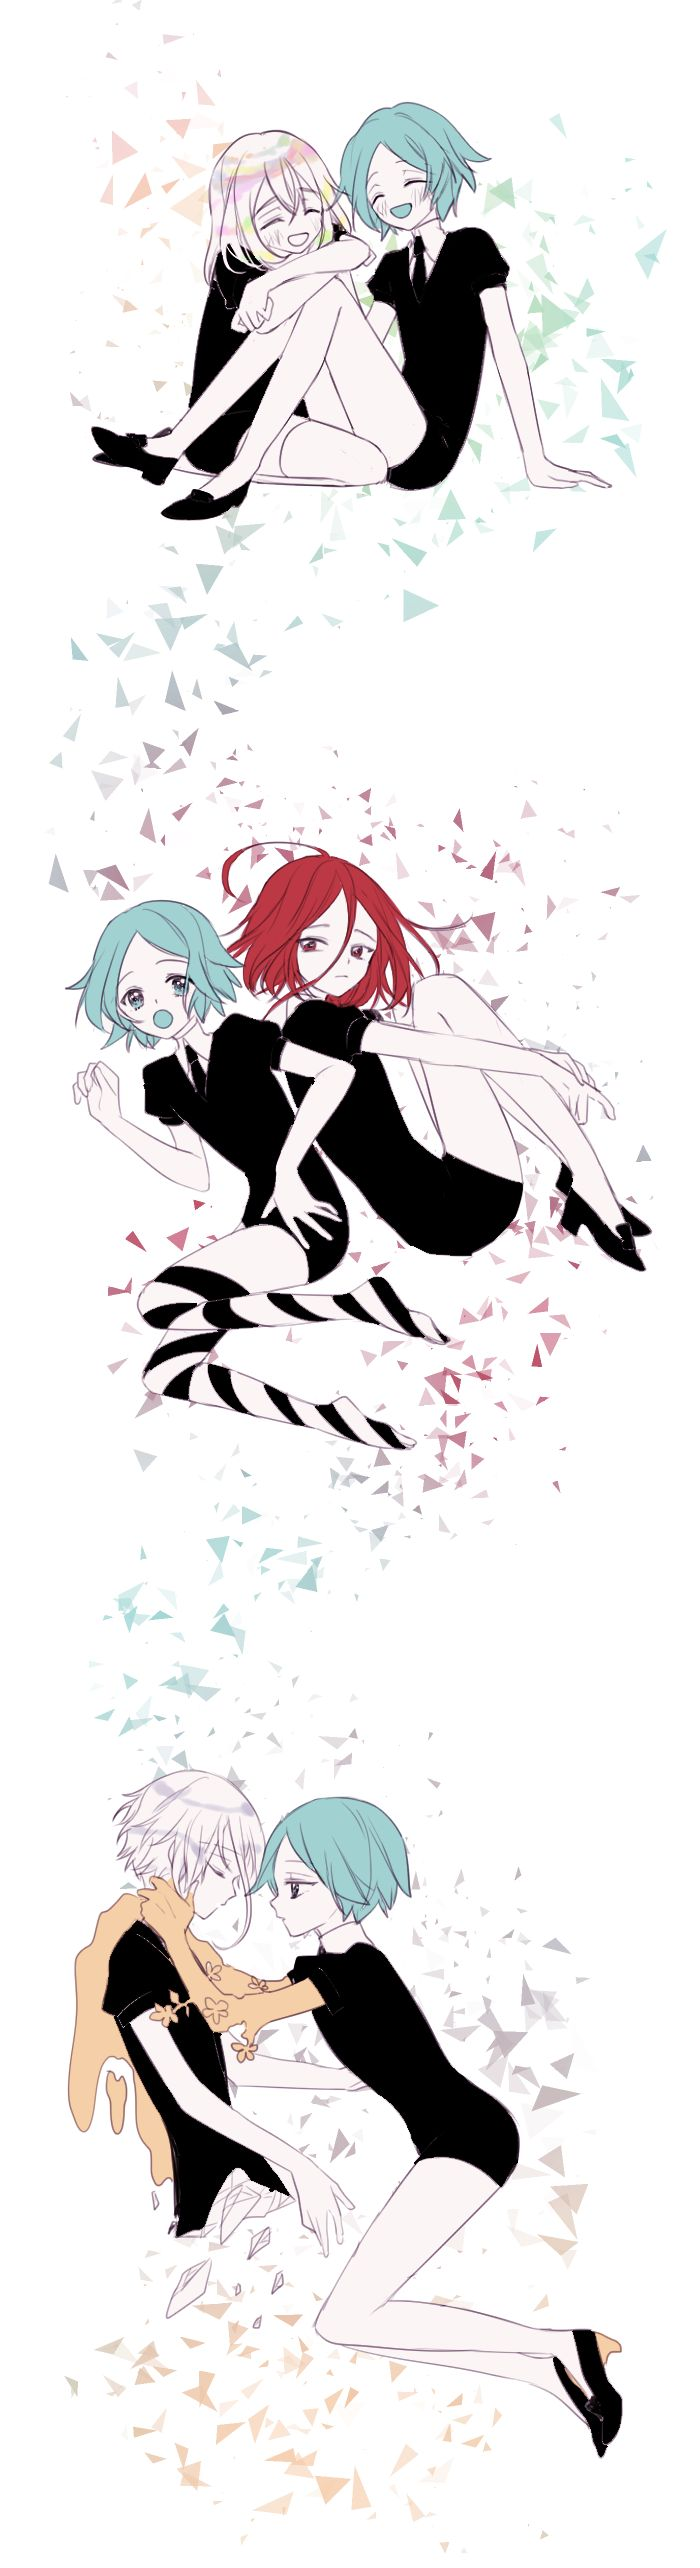 Land of the Lustrous.